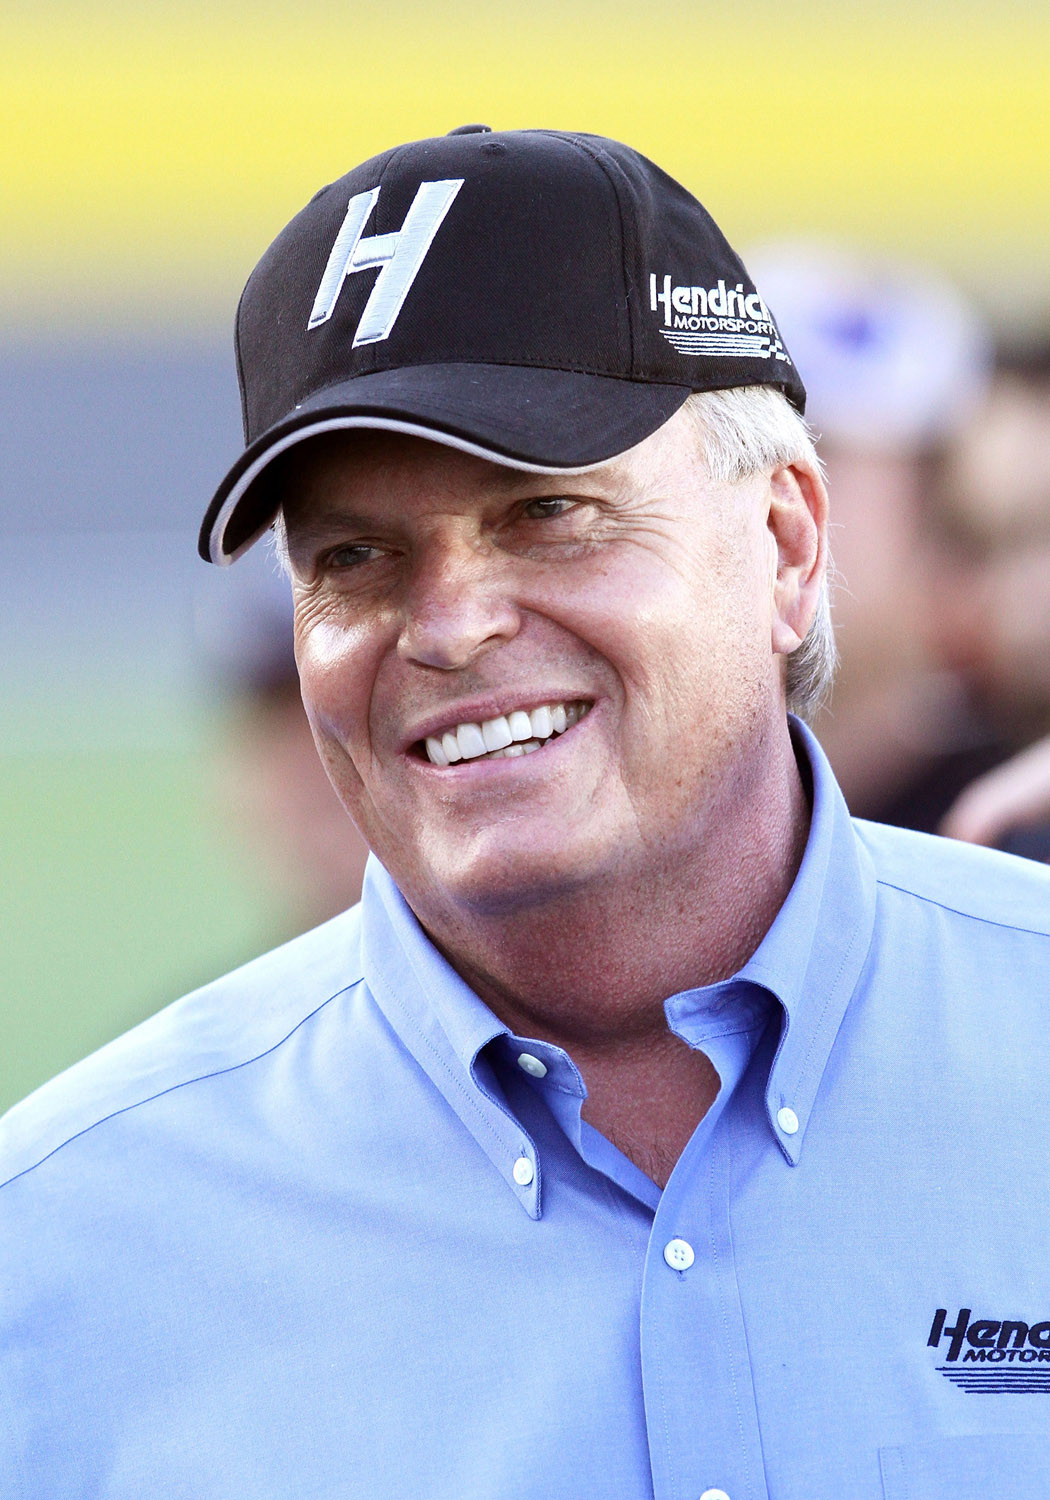 Wheeler dealer Rick Hendrick: life lessons in the car biz